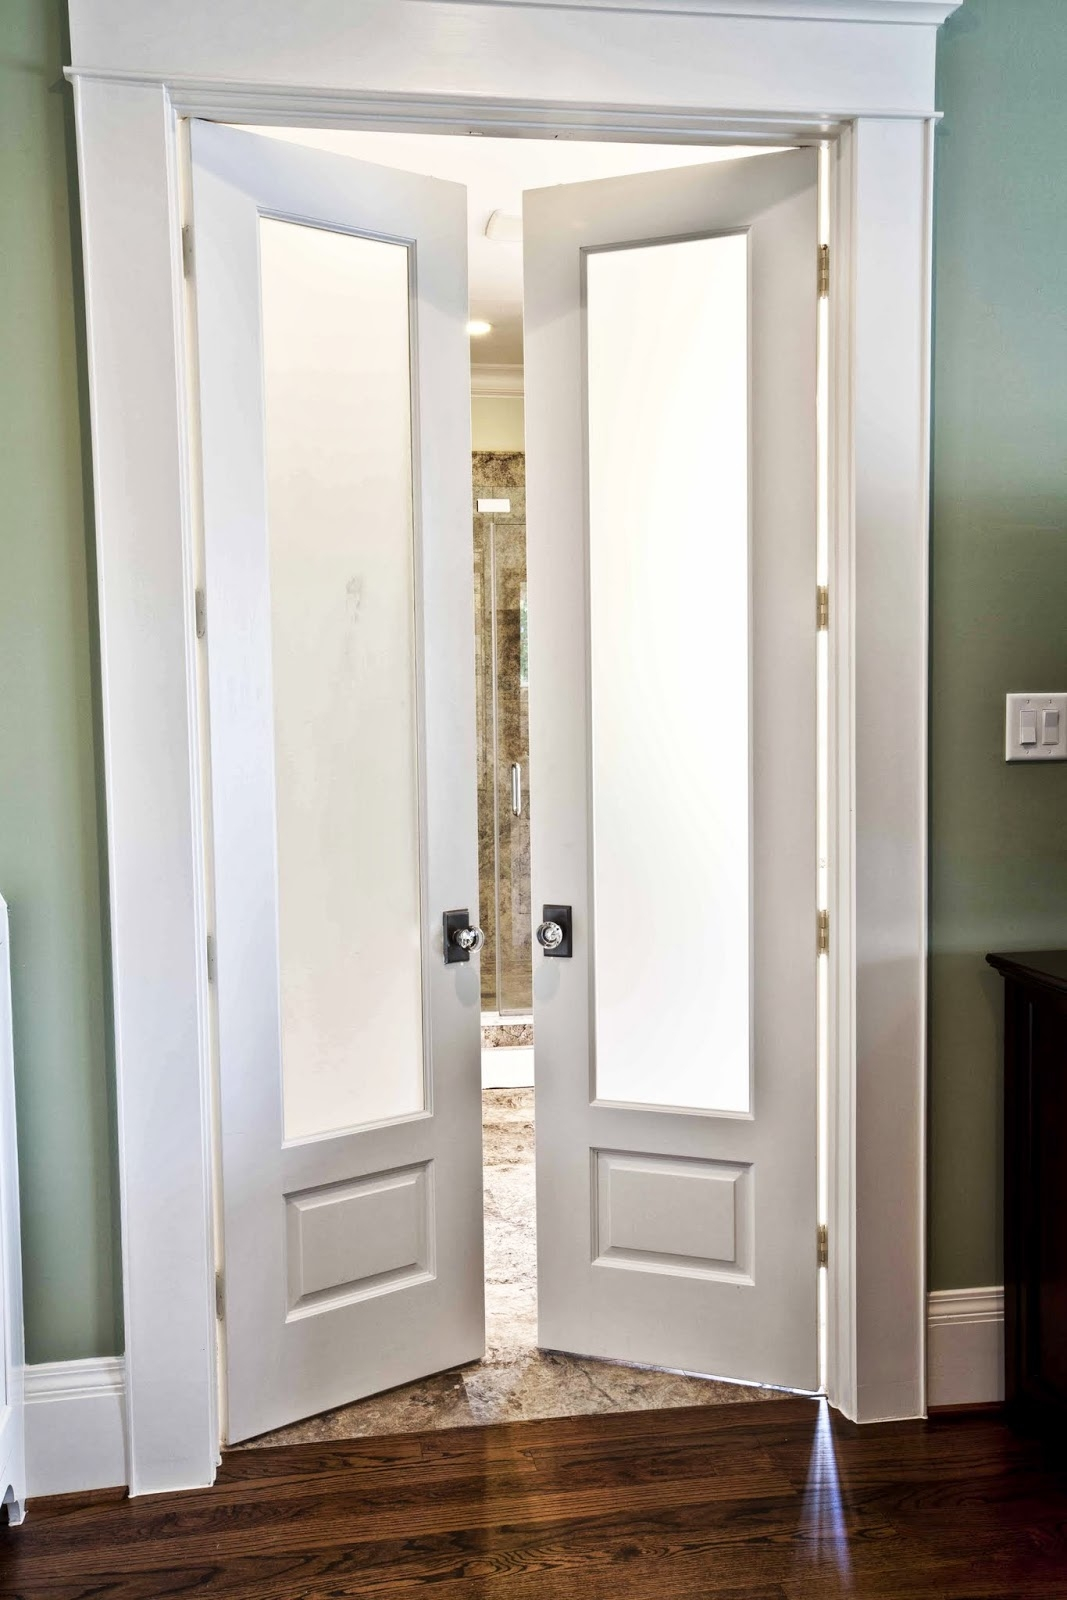 Bathroom Entry Door Size